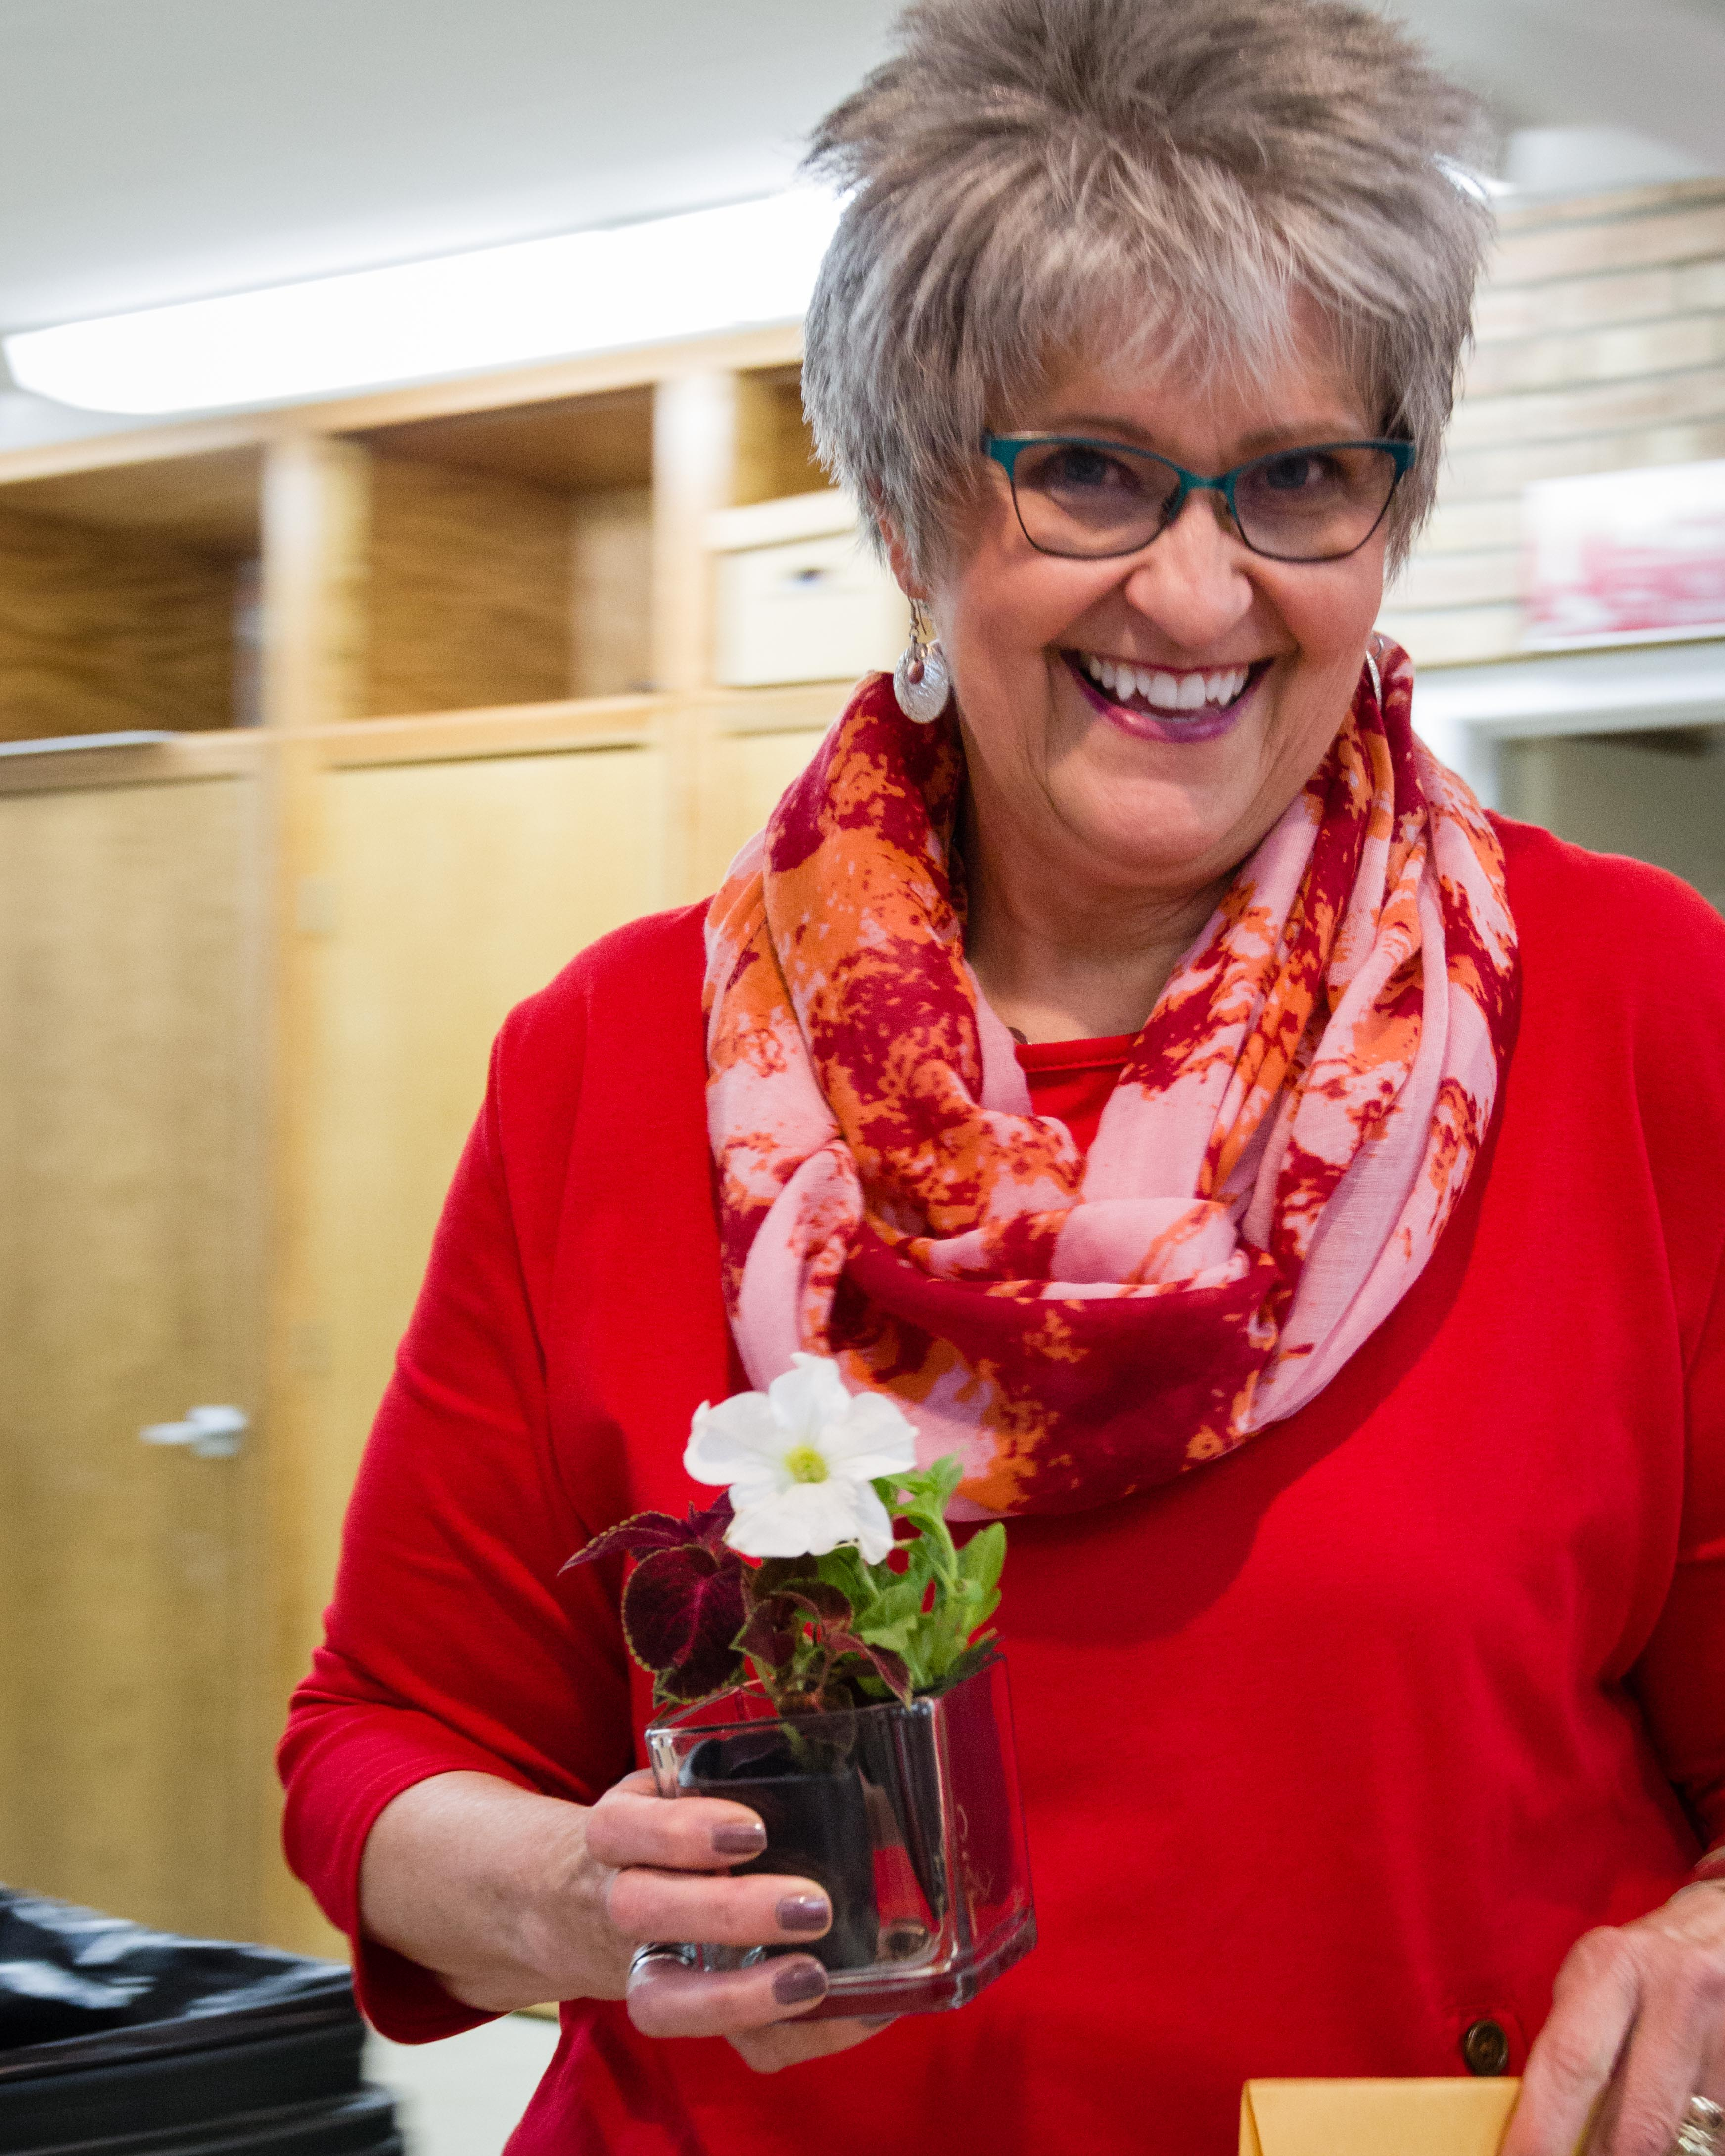 All of our teachers received flowers and a personal thank you from our kids